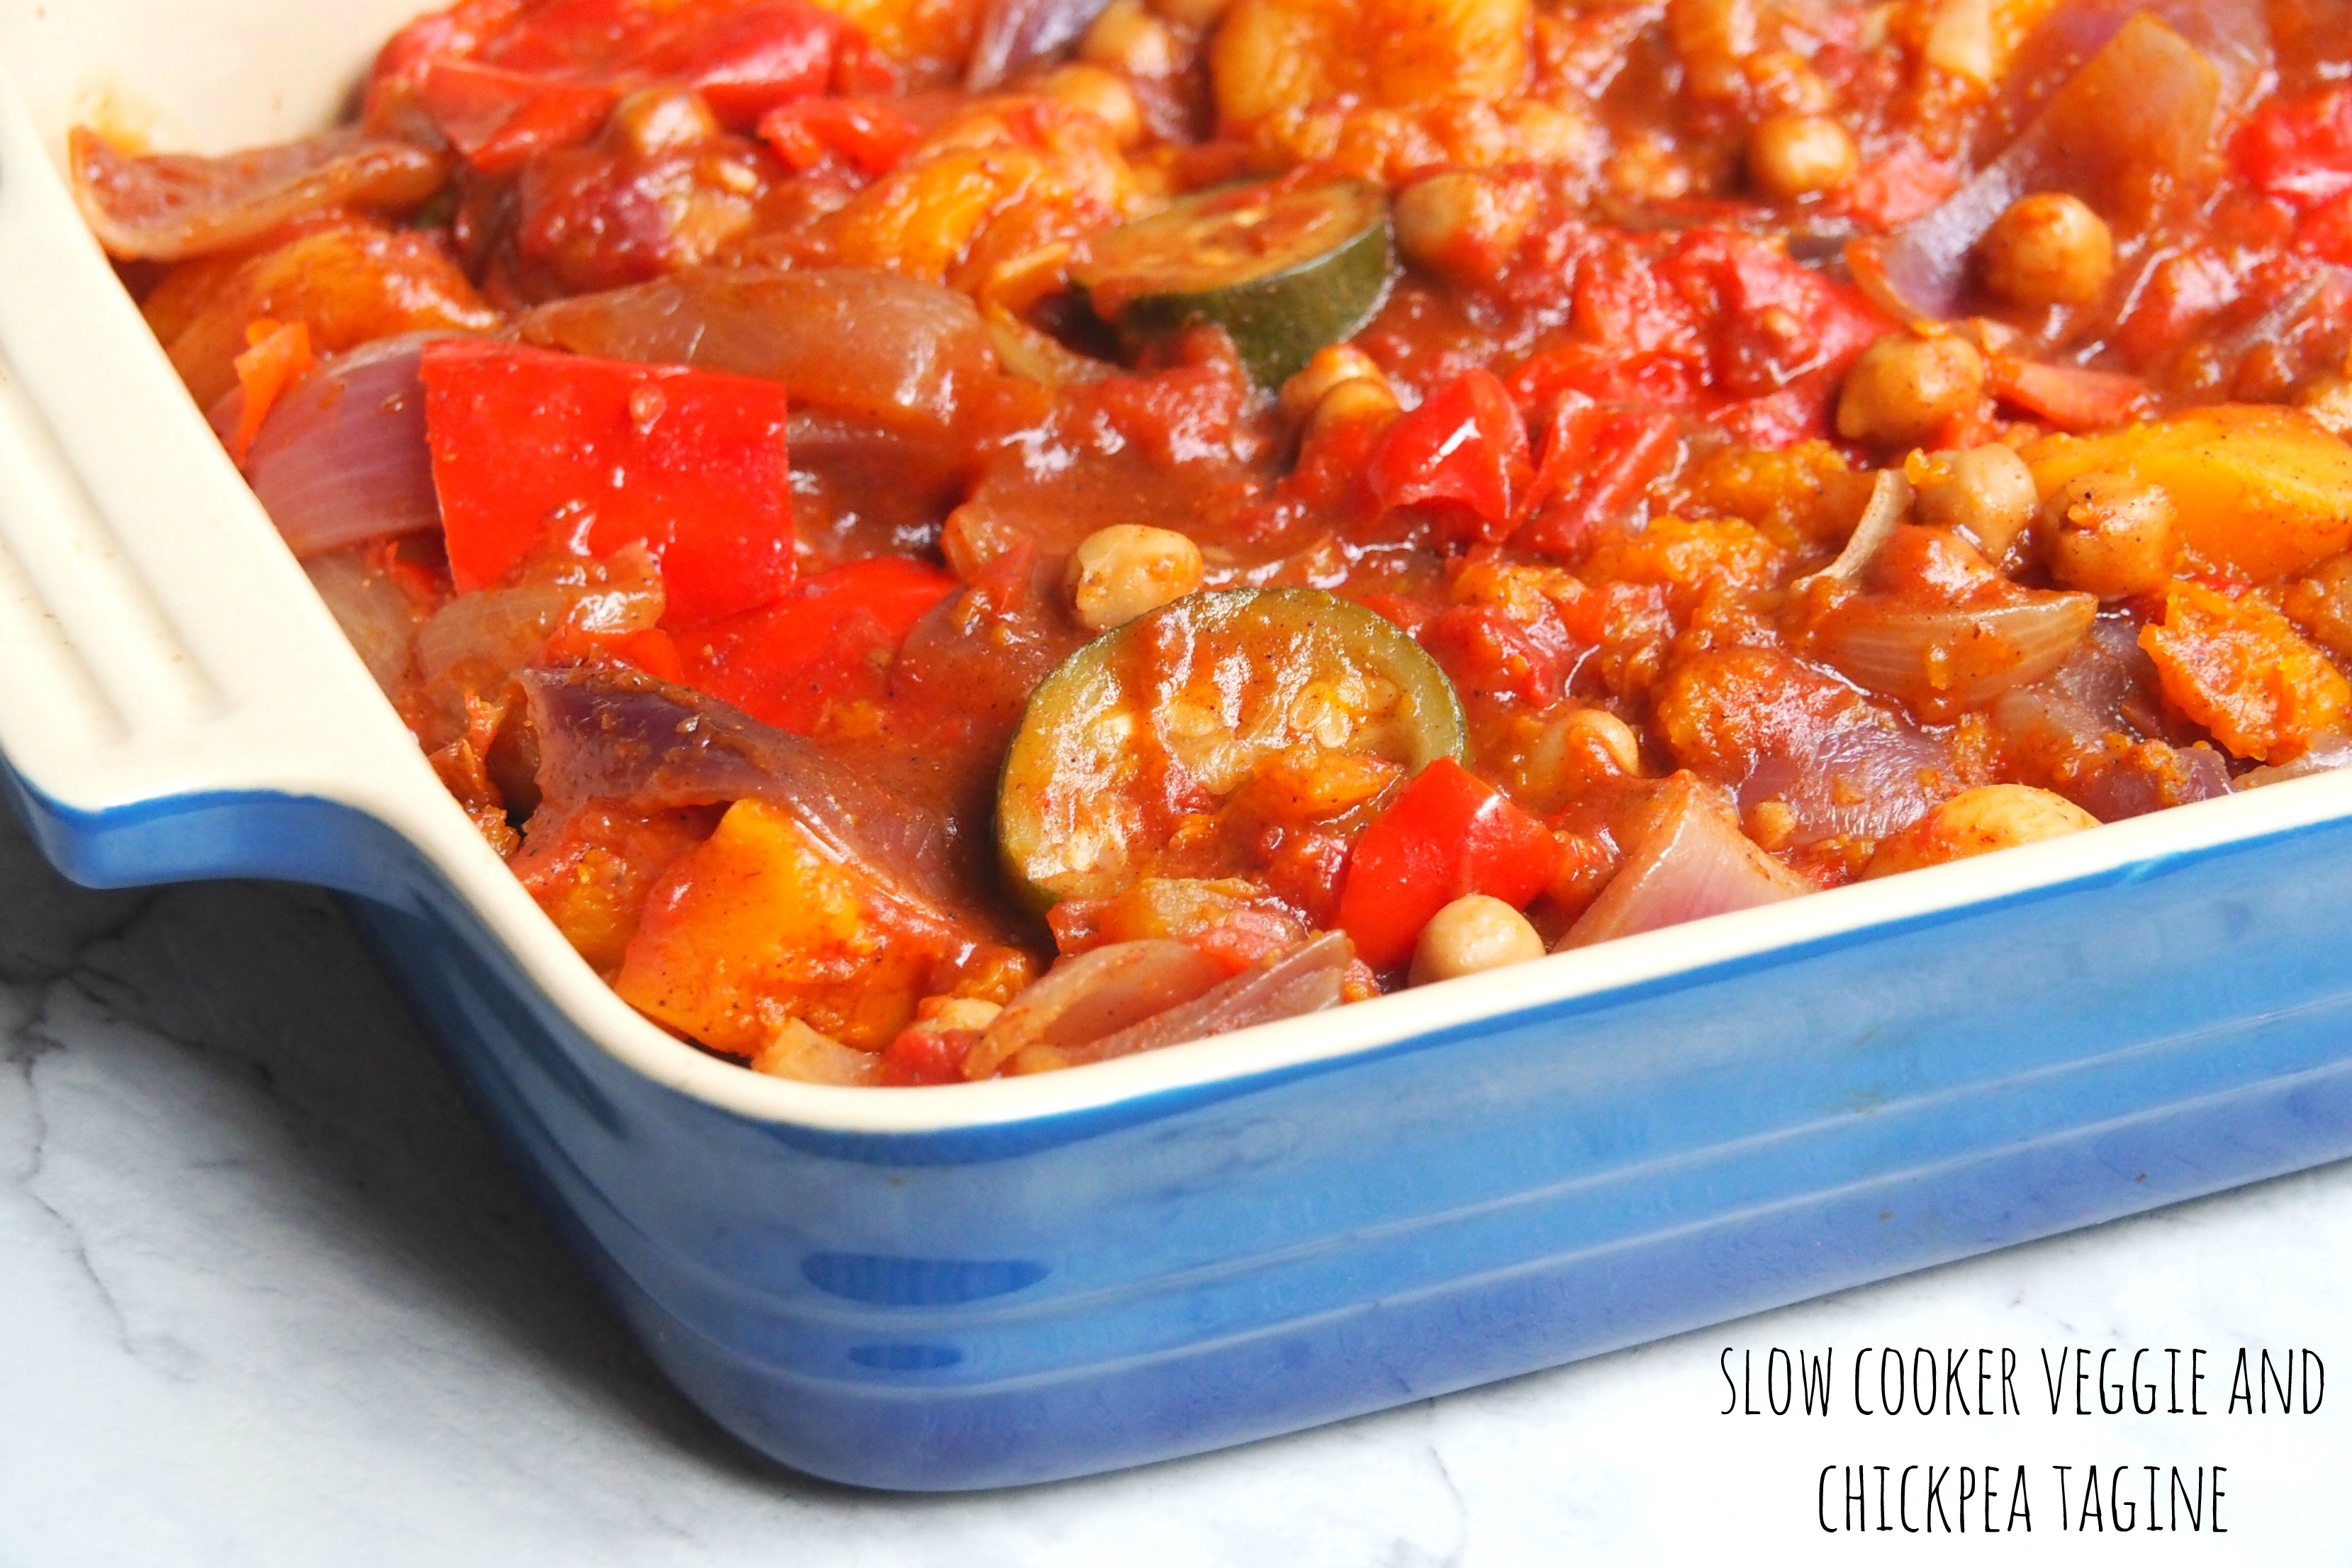 Slow Cooker Veggie and Chickpea Tagine